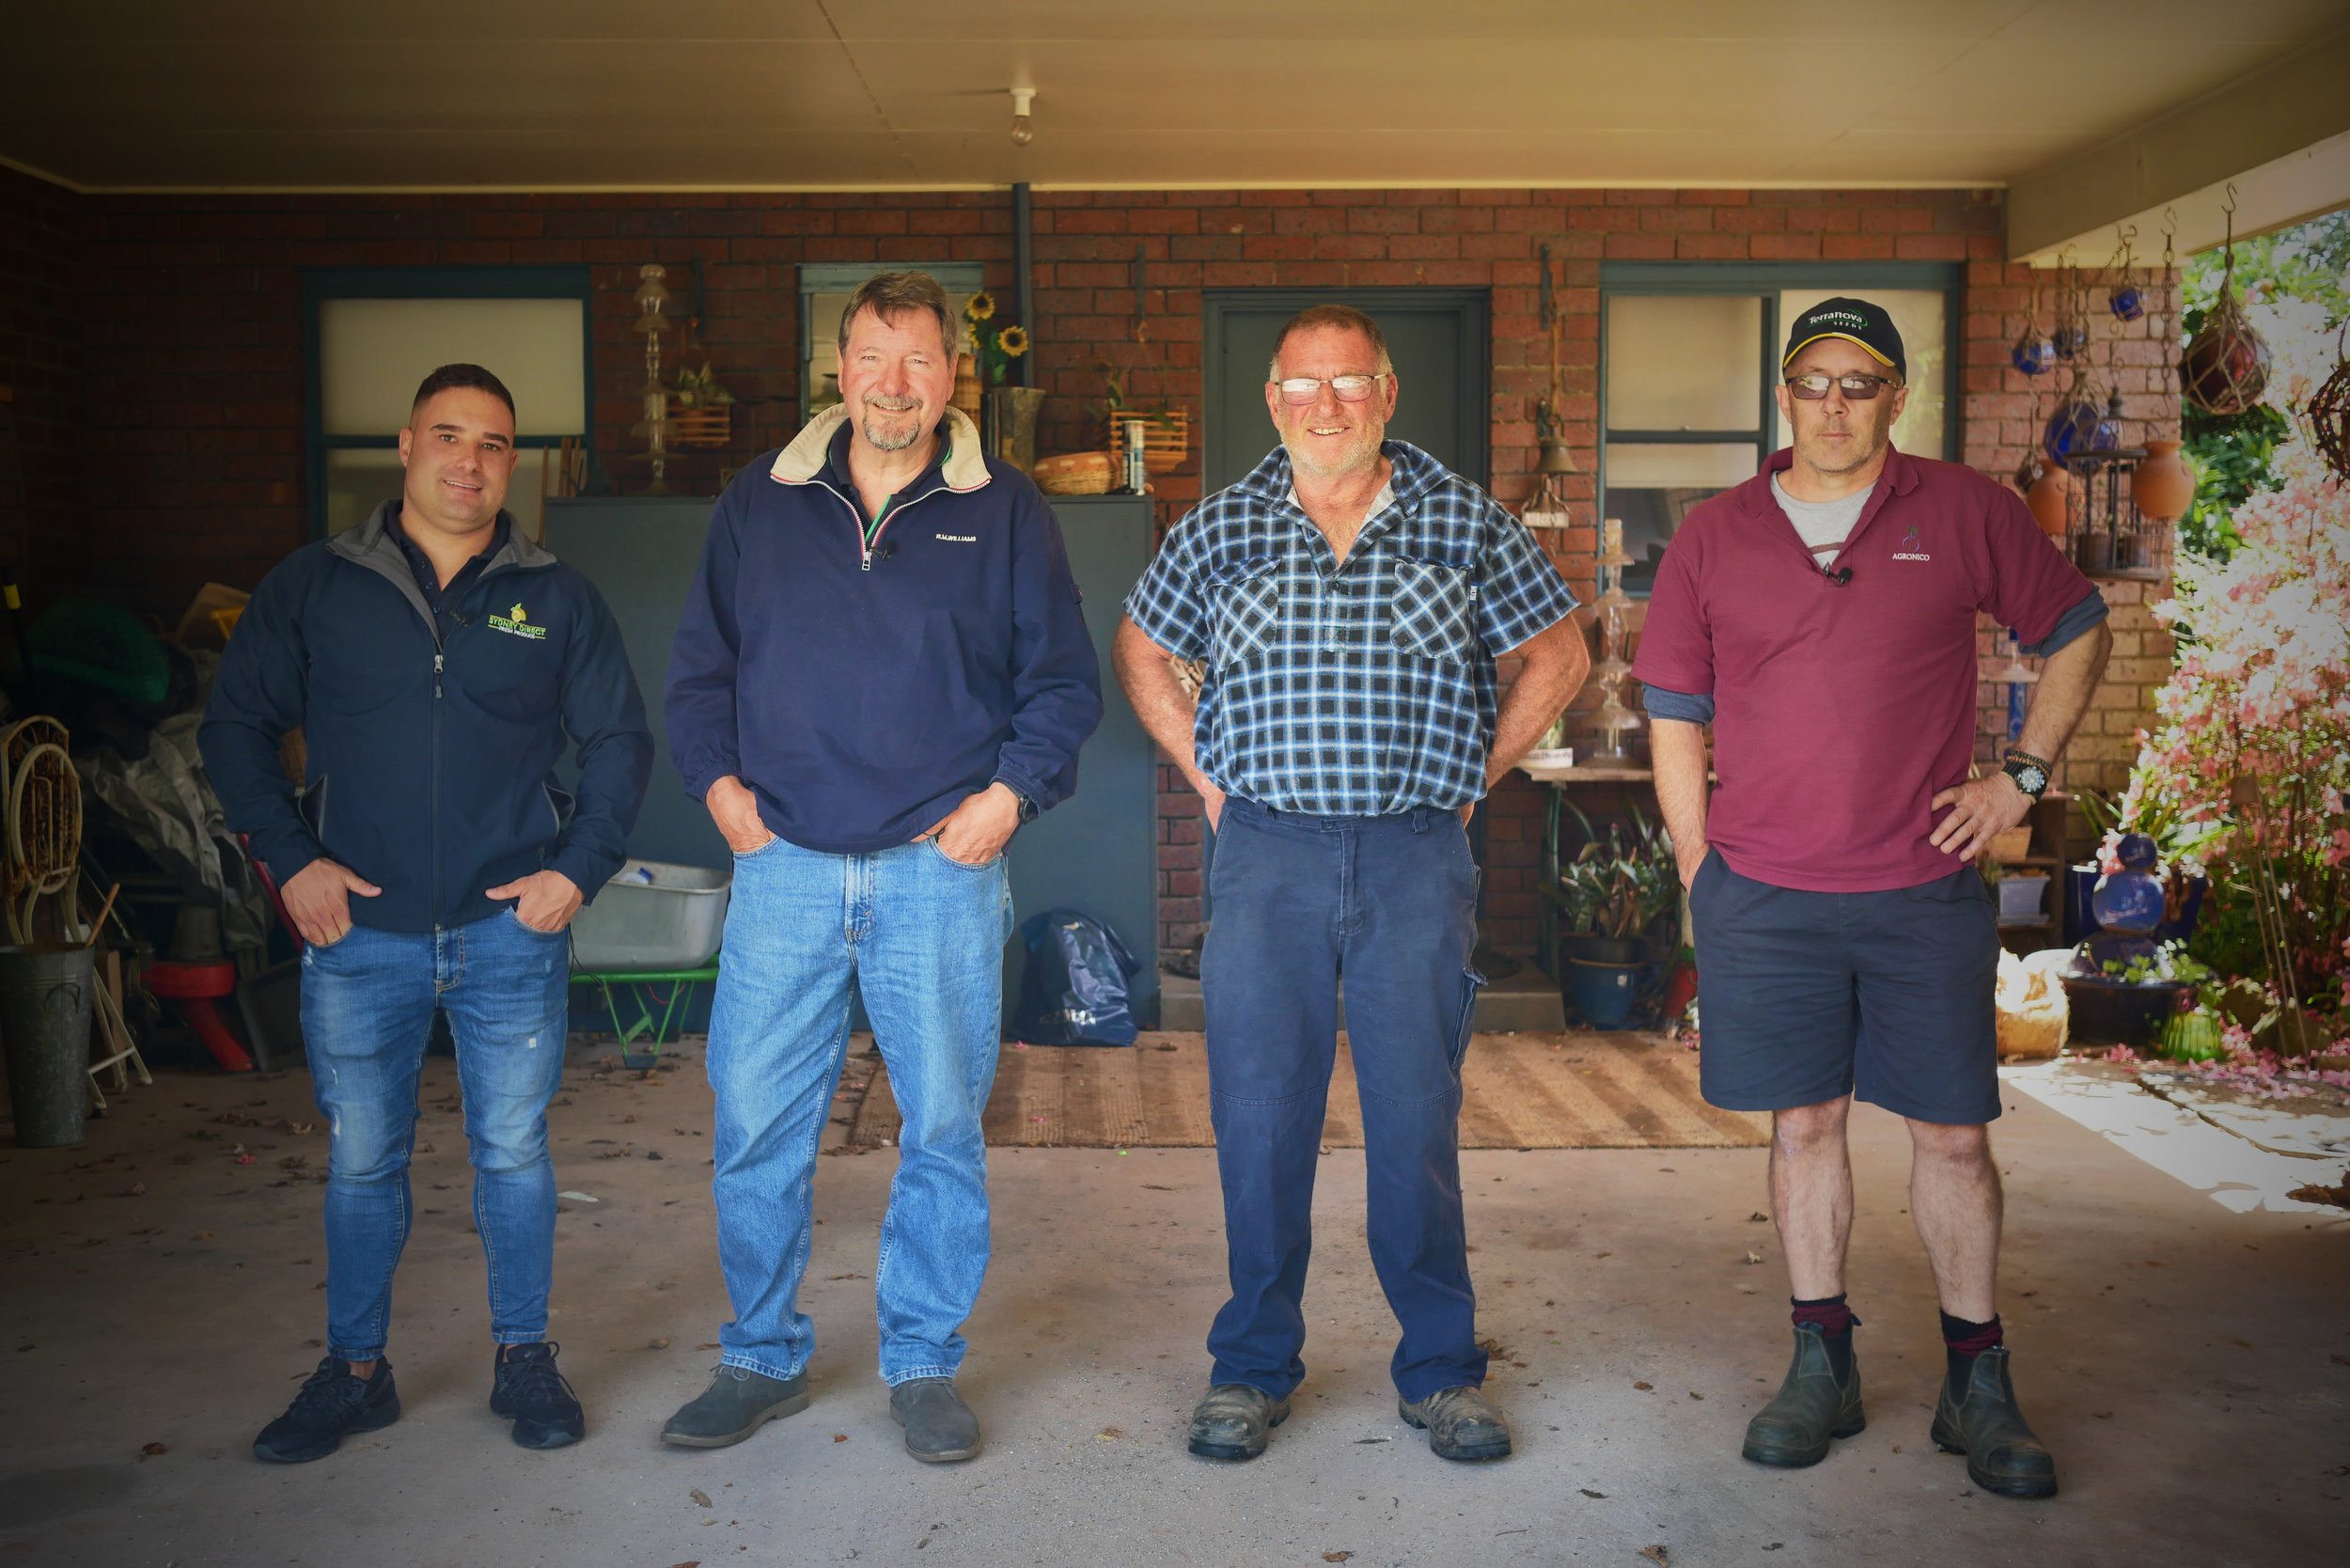 LEFT TO RIGHT. WHOLESALER, AGENT, FARMER AND AGRONOMIST.